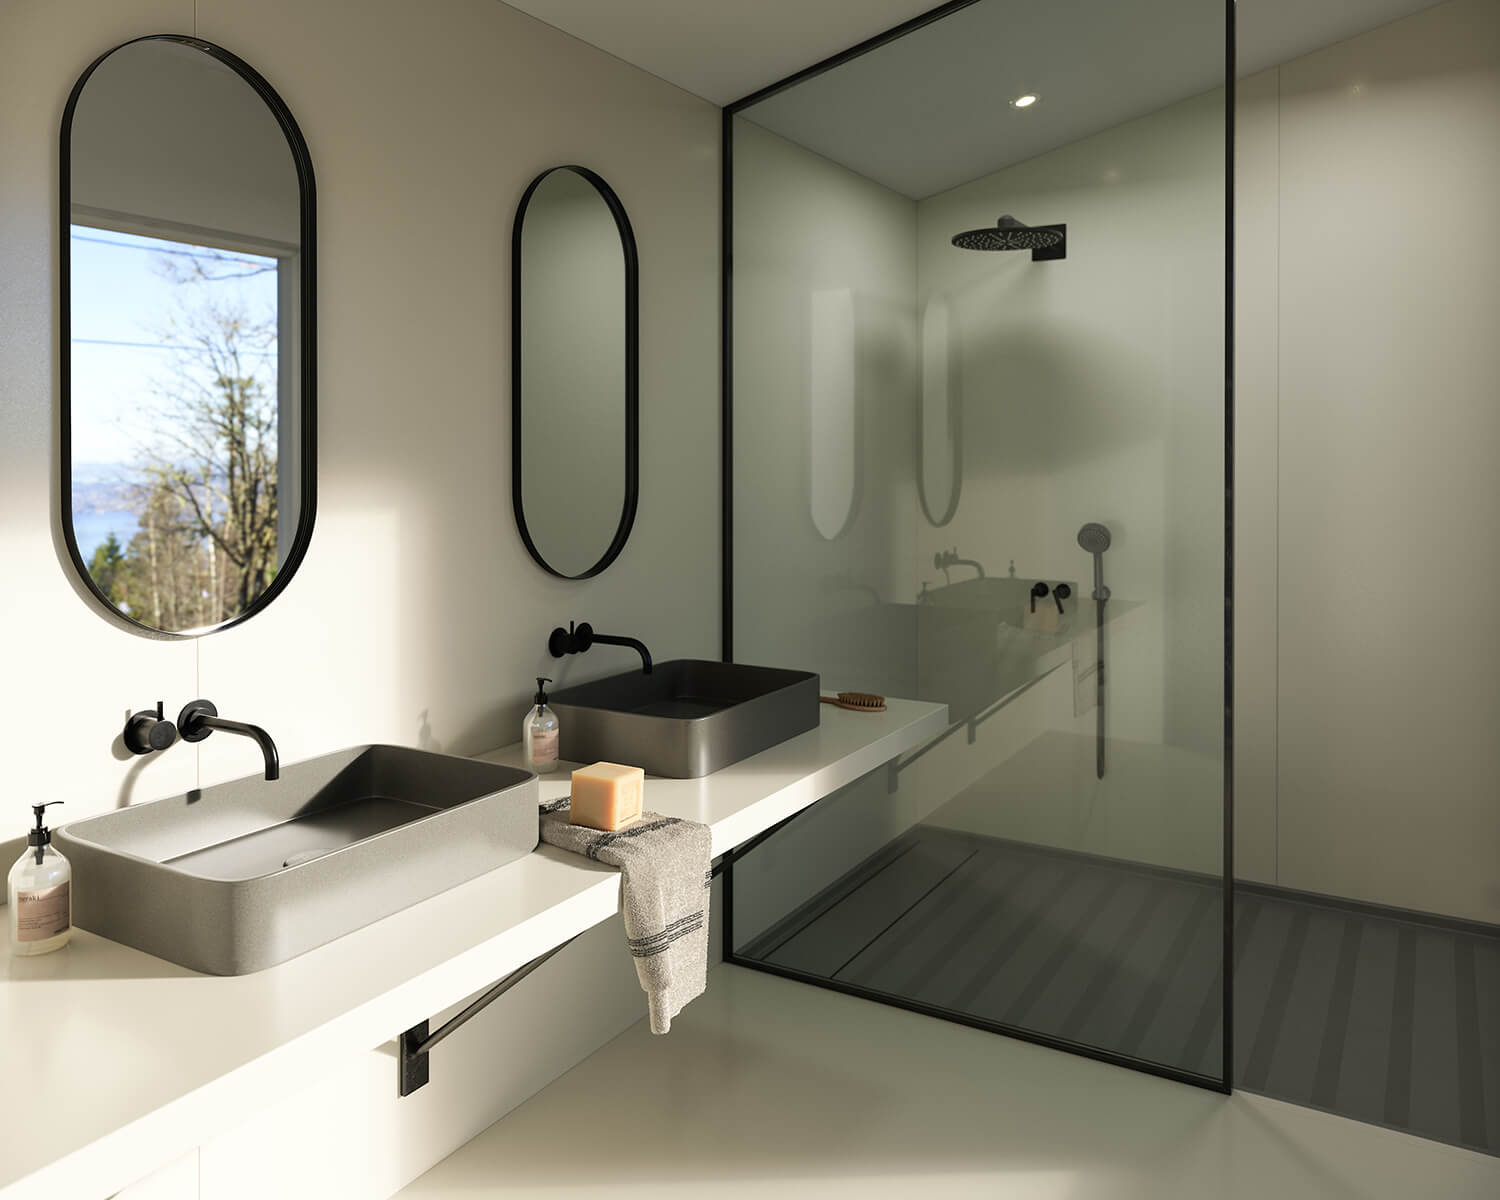 Bathroom with white Silestone counter, two grey sinks with black oval mirrors above